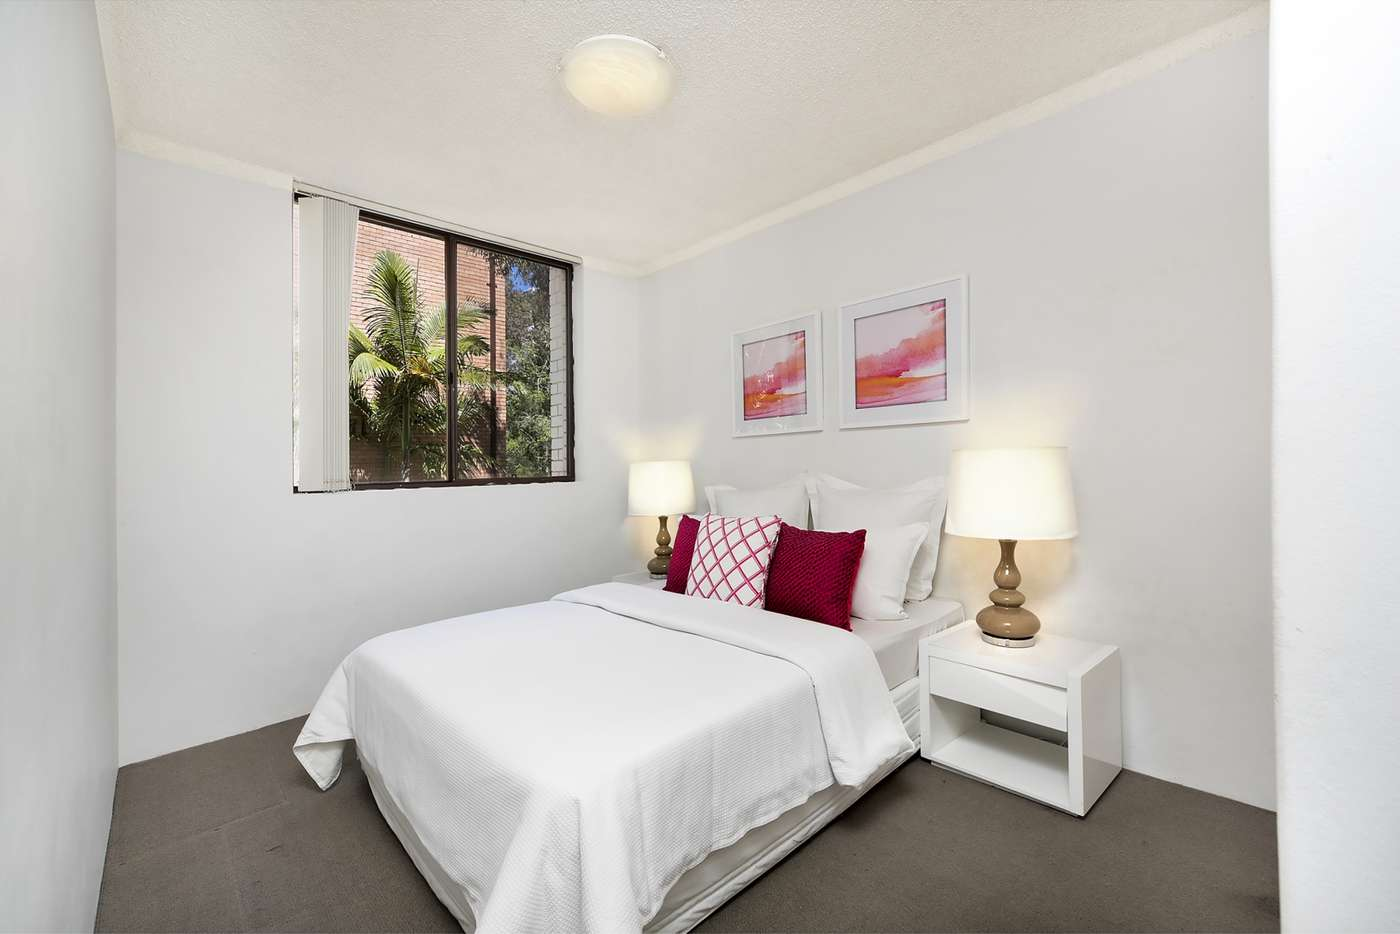 Sixth view of Homely unit listing, 7/165-167 Herring Road, Macquarie Park NSW 2113